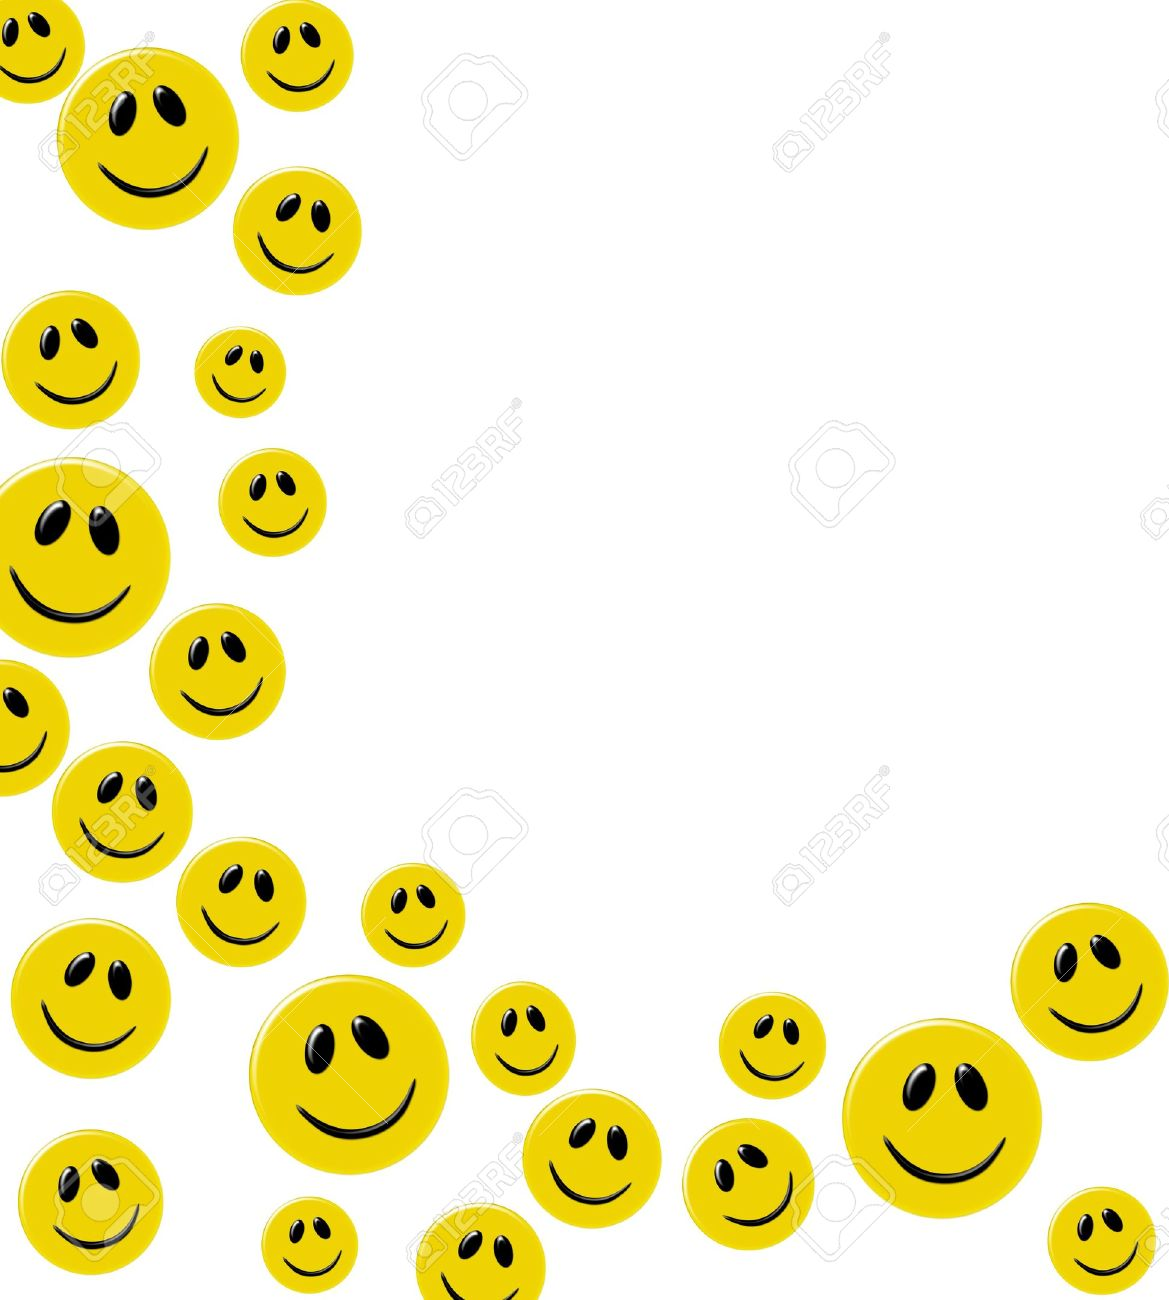 Lots of yellow smiley faces on a white background happy border lots of yellow smiley faces on a white background happy border stock photo 6477826 voltagebd Image collections